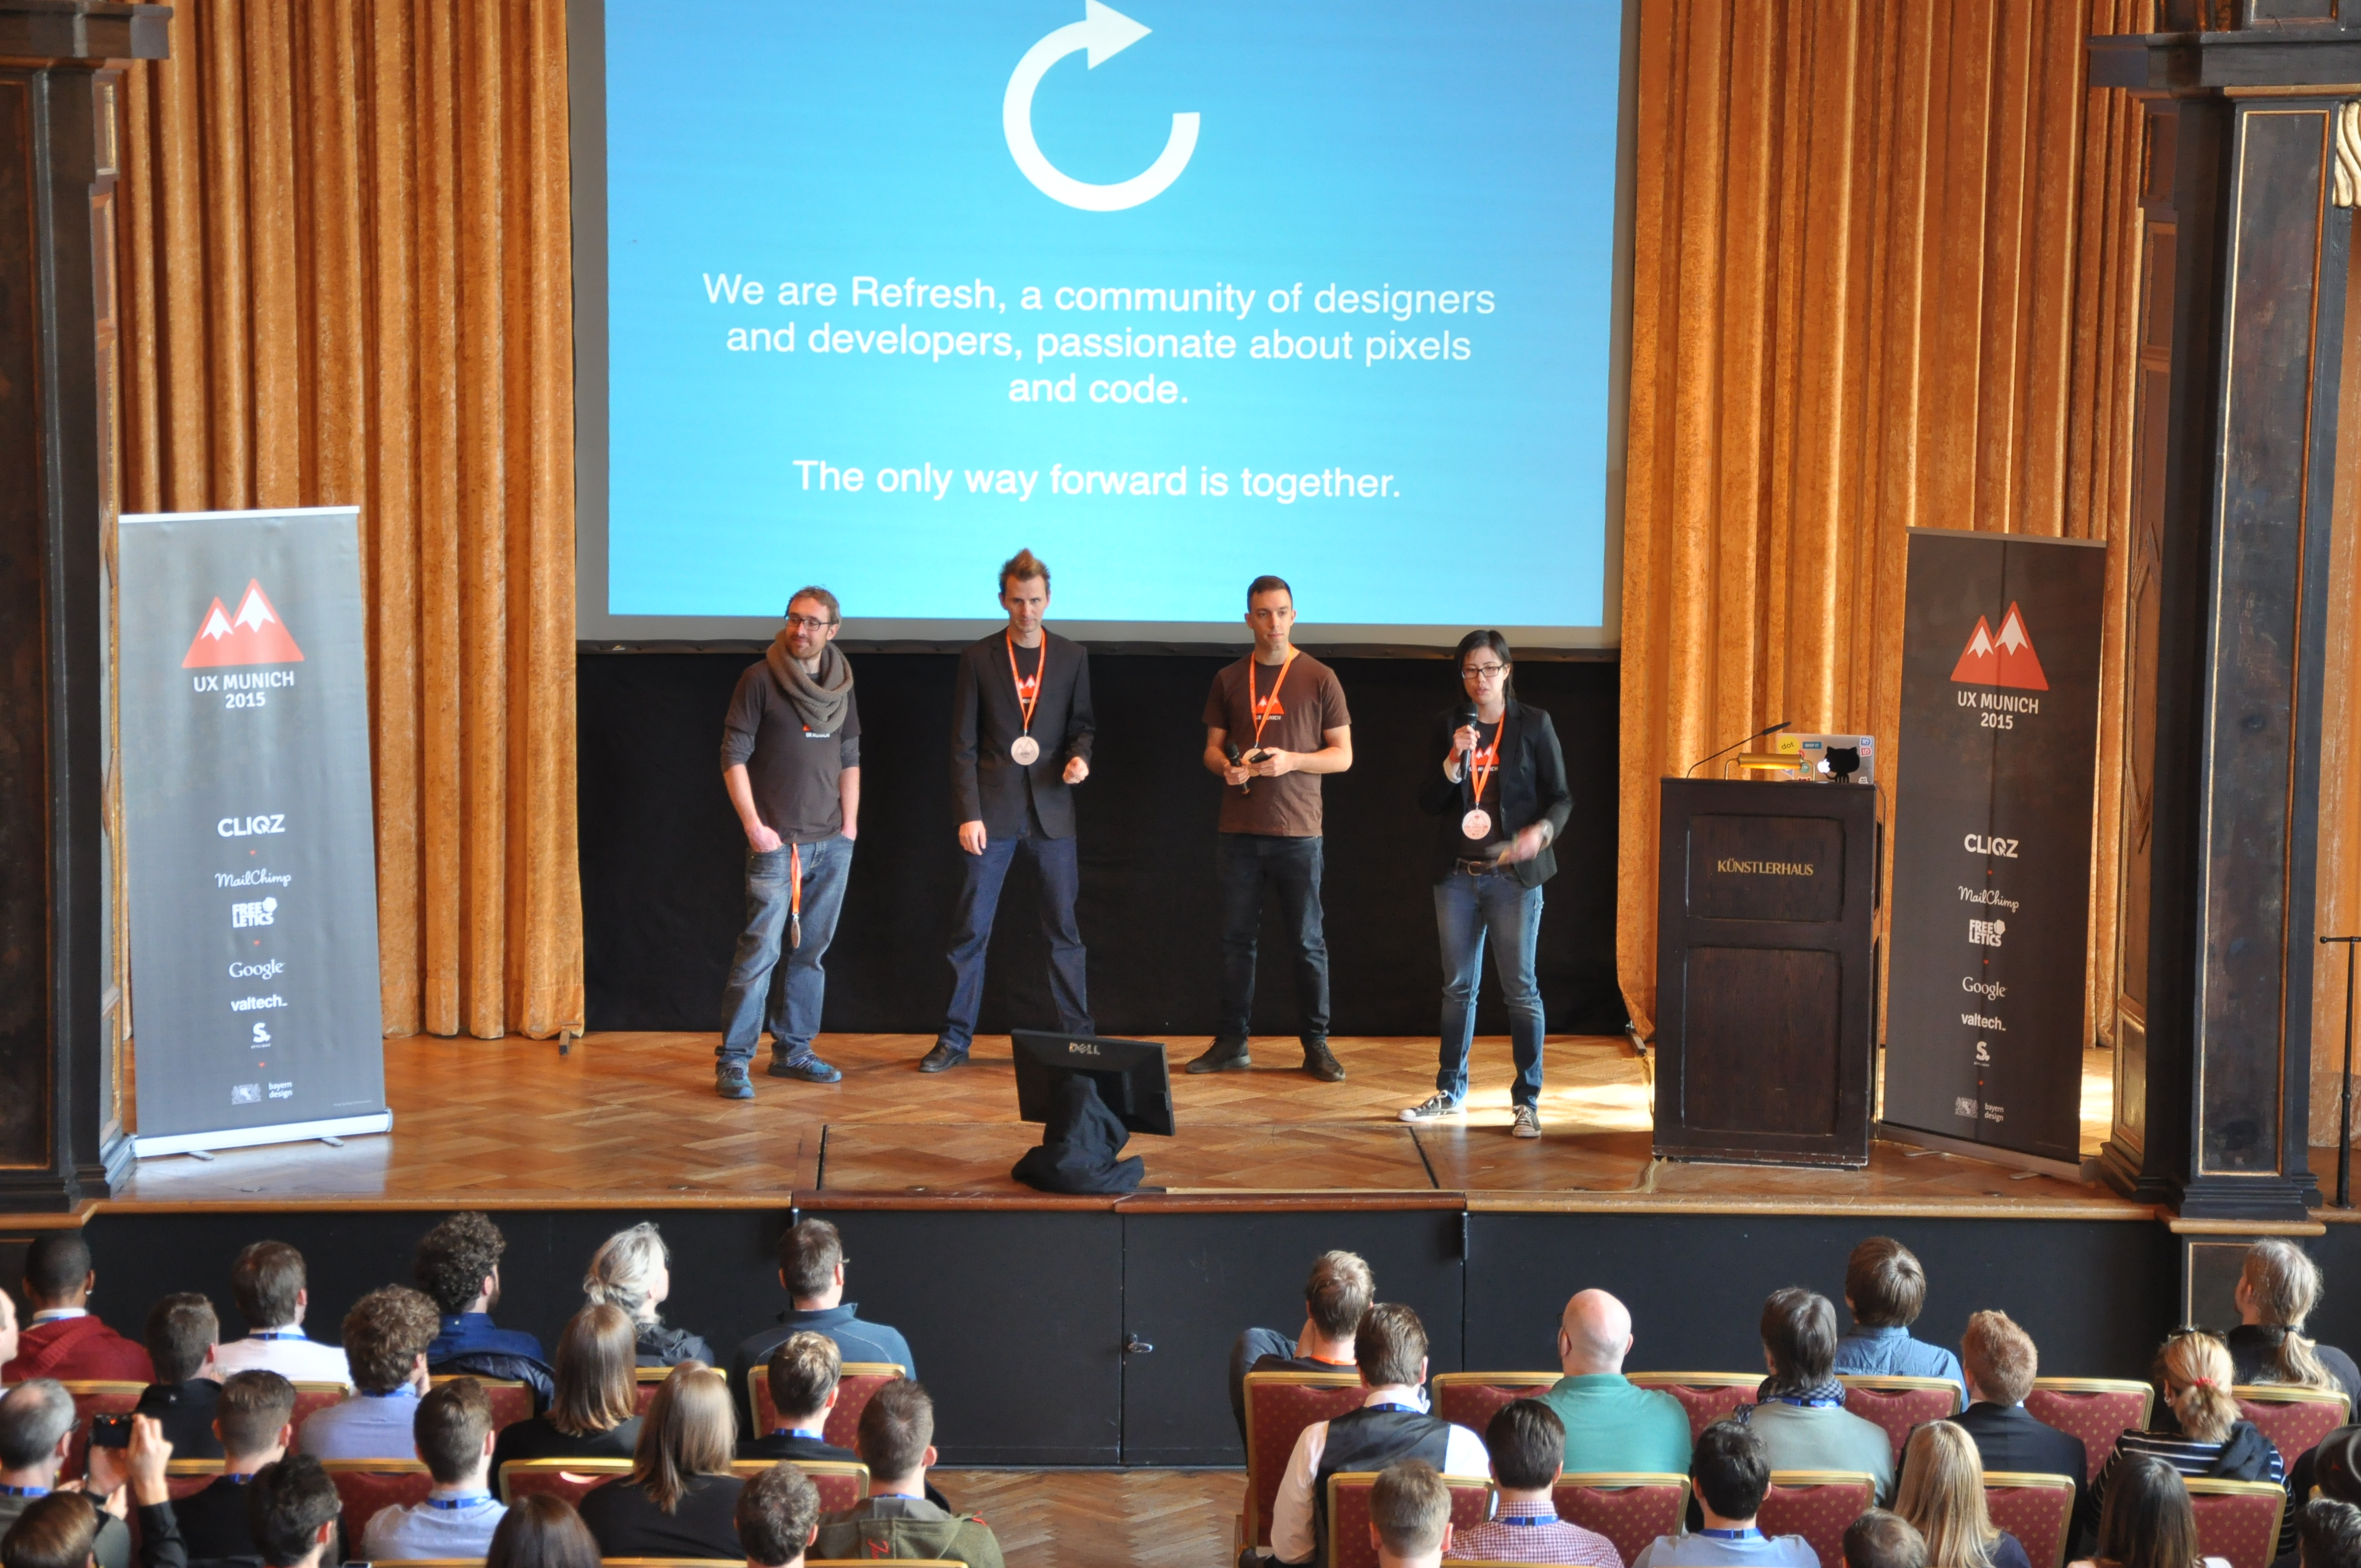 On stage at UX Munich 2015 with my co-founders and co-organizers